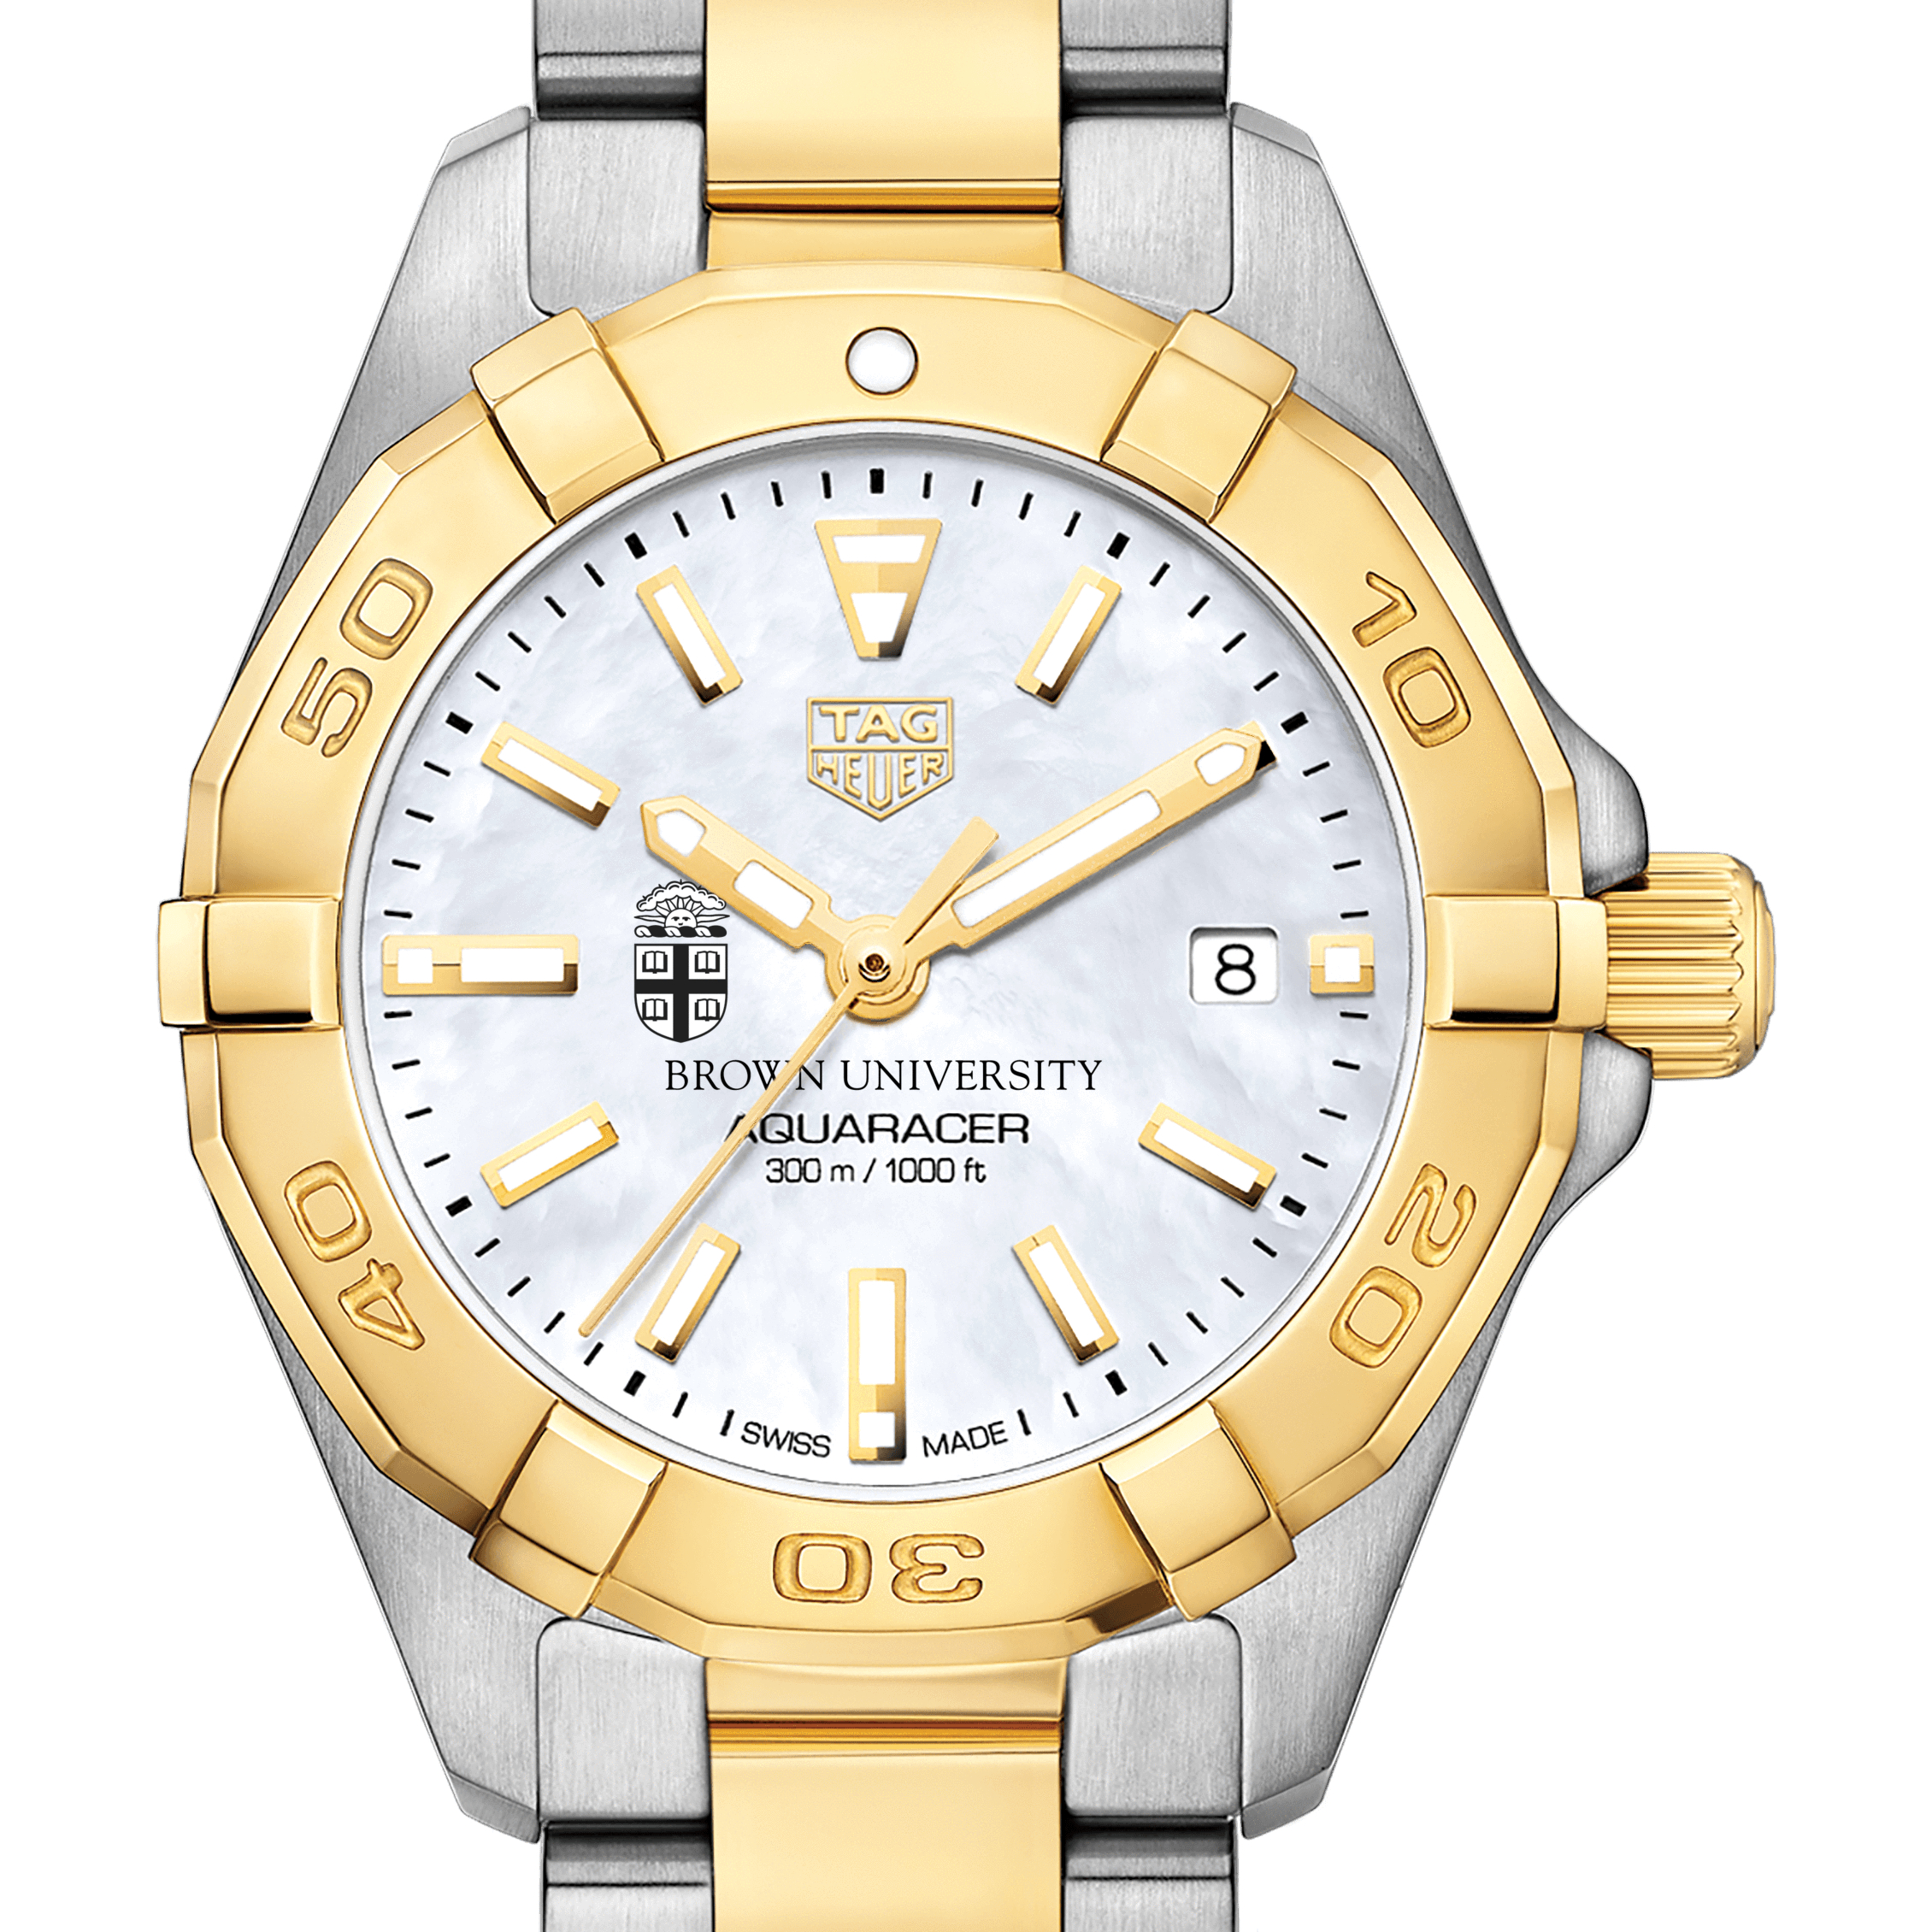 Brown University TAG Heuer Two-Tone Aquaracer for Women